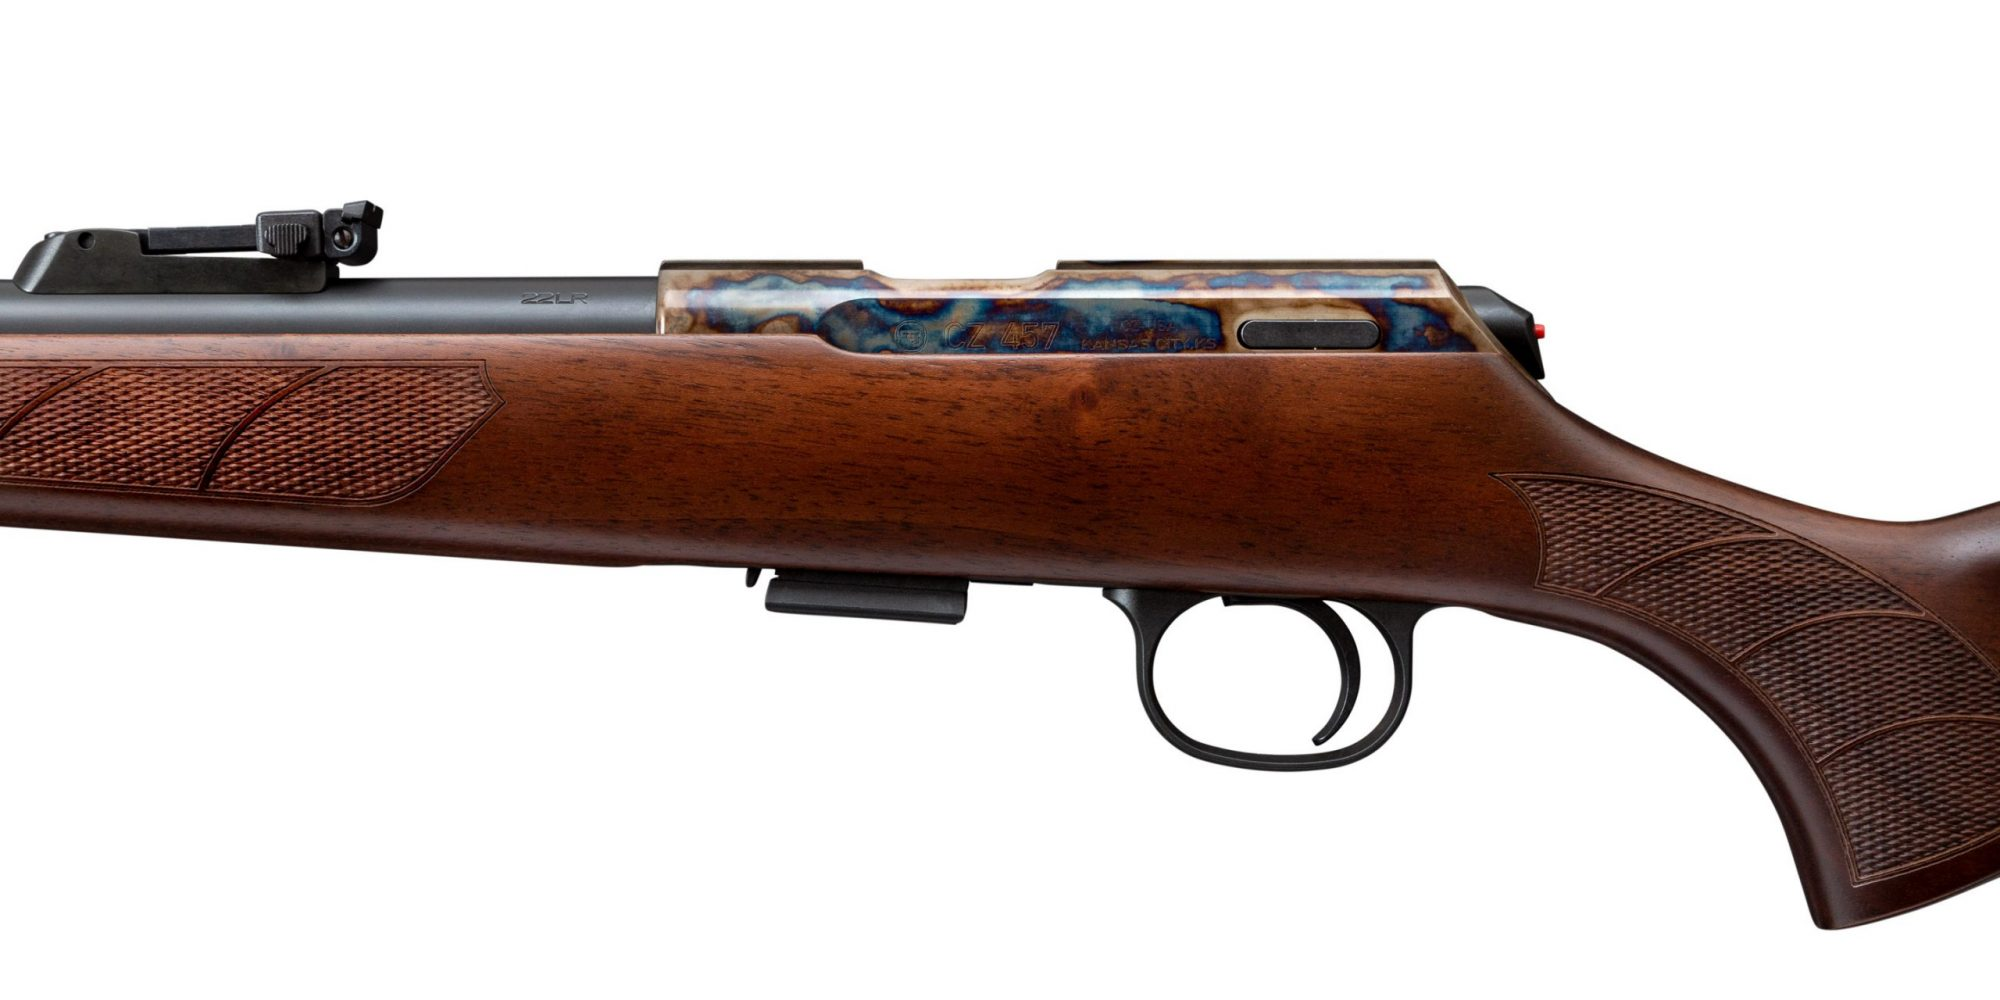 Photo of a CZ 457 Lux featuring bone charcoal color case hardening by Turnbull Restoration of Bloomfield, NY